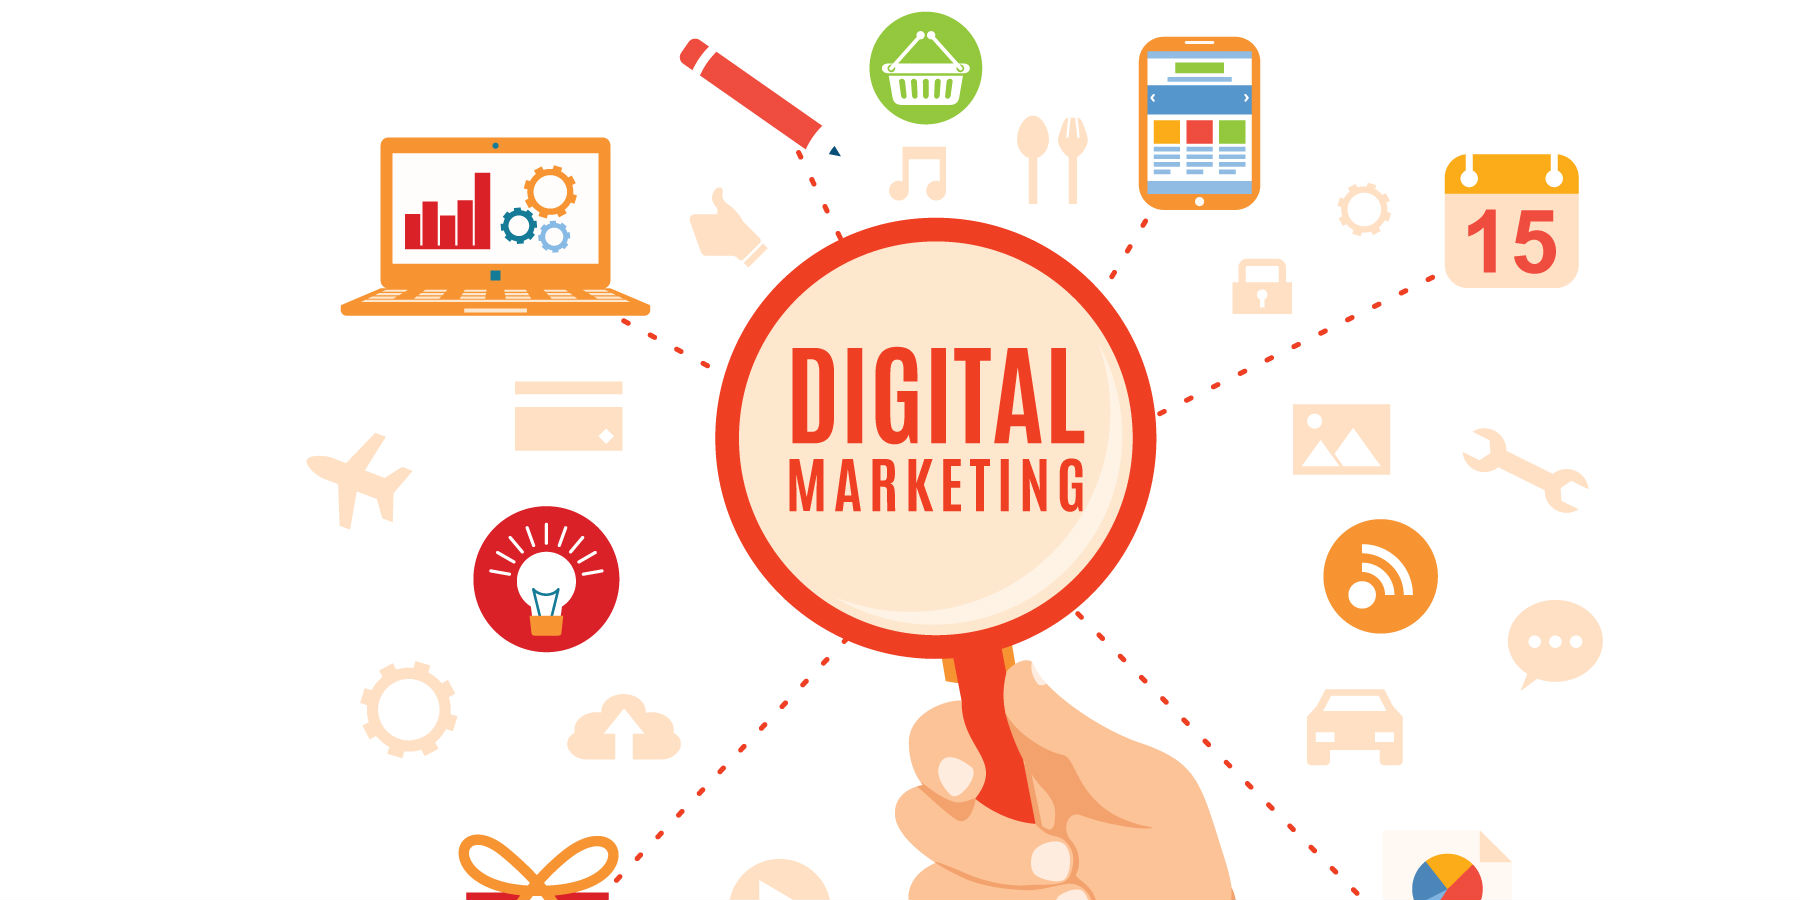 Digital Marketing career and scope in Nepal